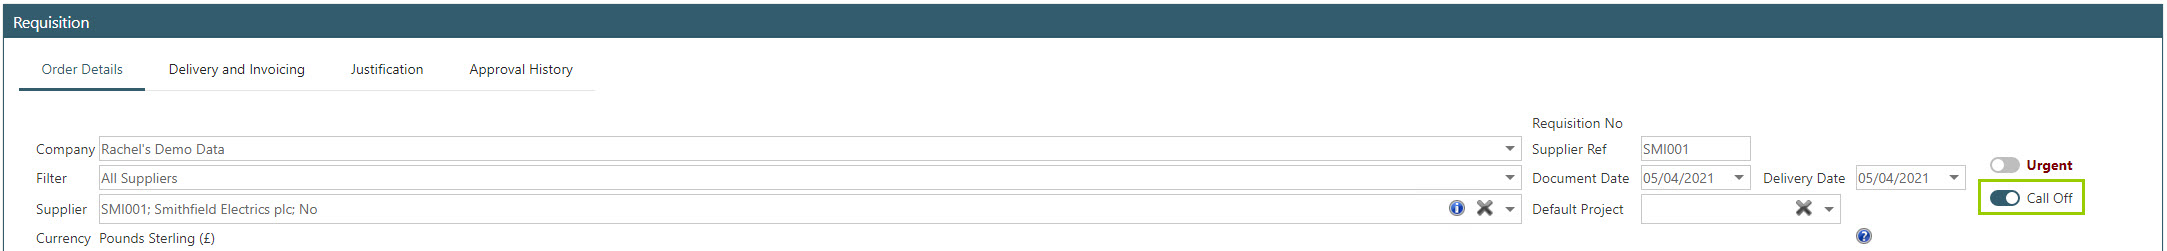 Sicon WAP Purchase Requisitions Help and User Guide - Requisition HUG Section 11.3 Image 1